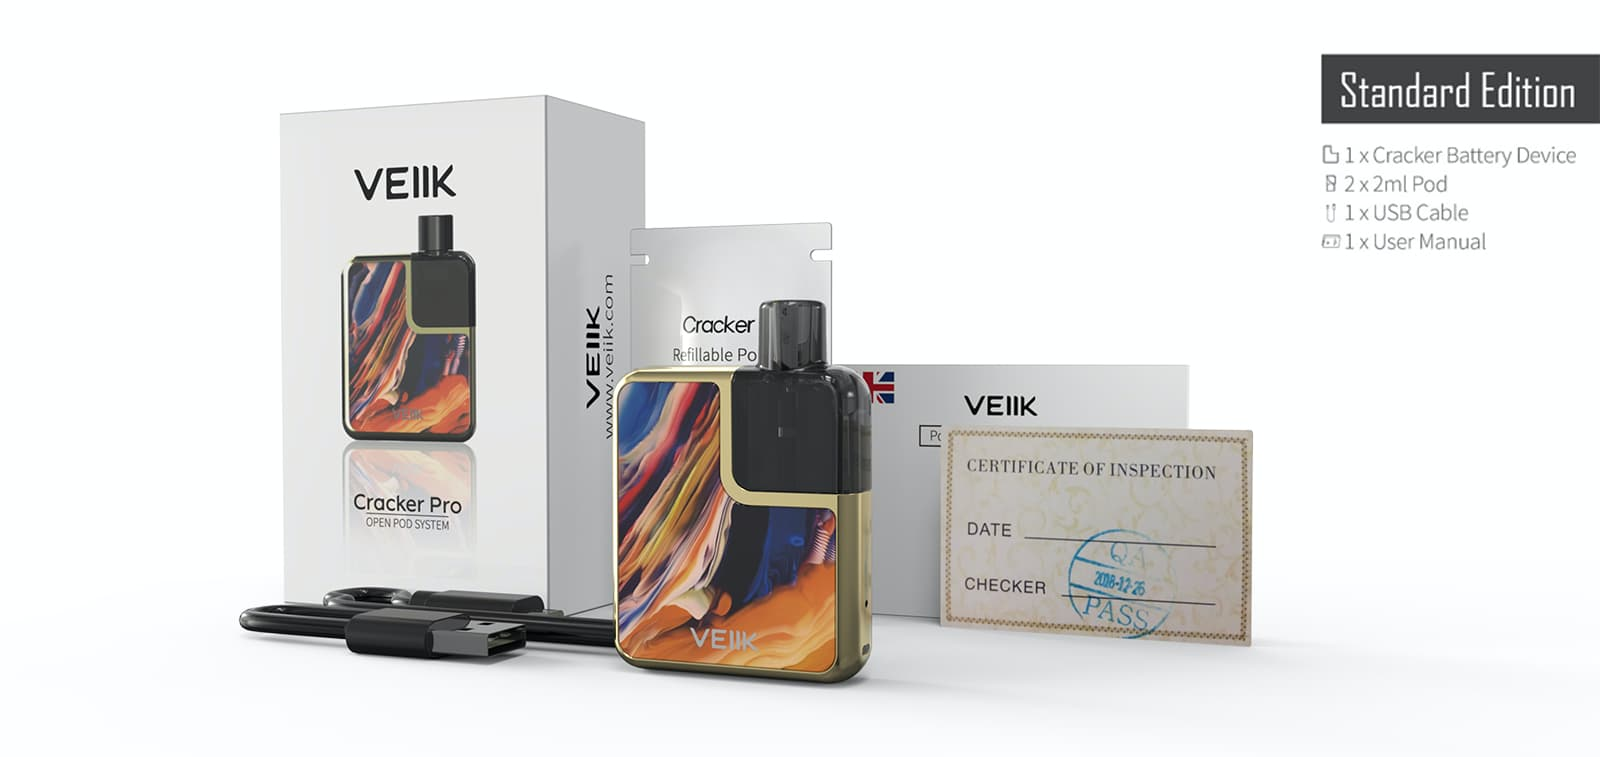 VEIIK exquisite pod devices supplier high-end personal vaporizer-9